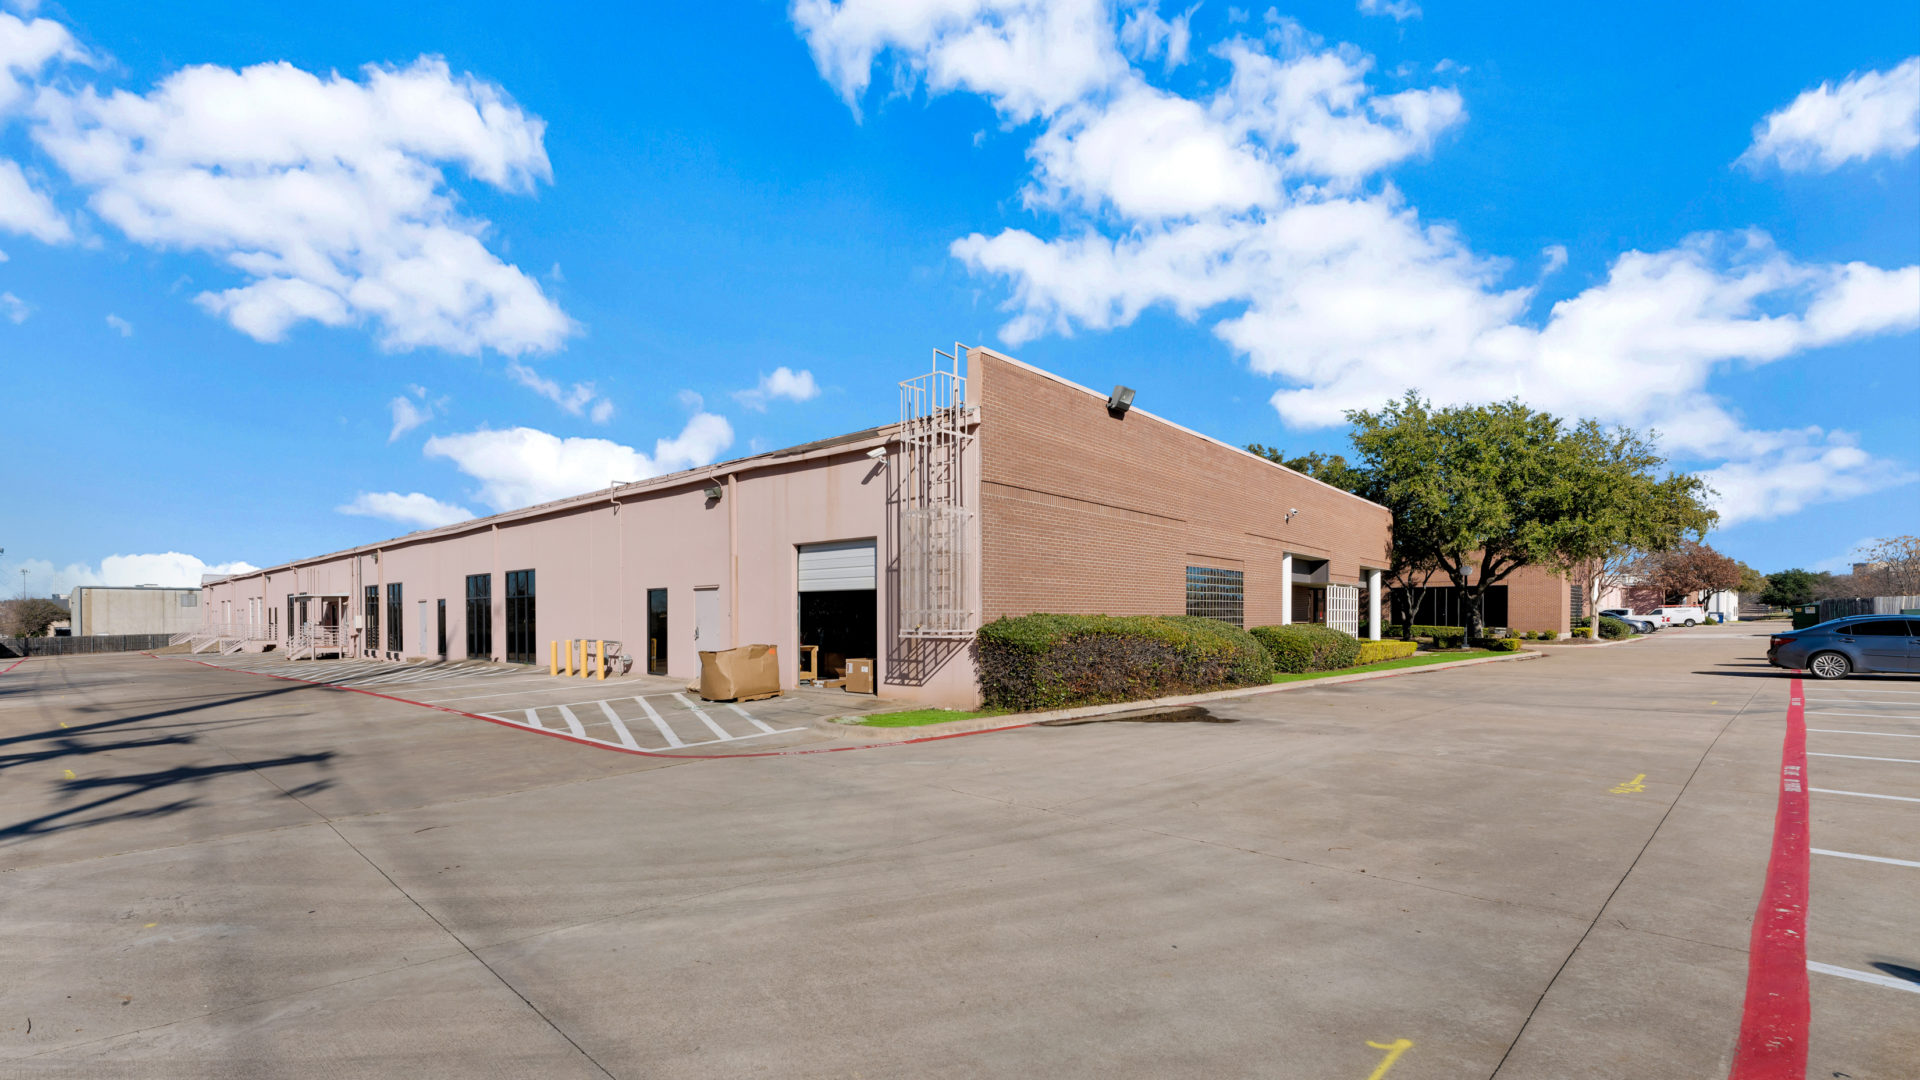 View of the backside of one building in the Avion Business Park with multiple garage doors and loading docks